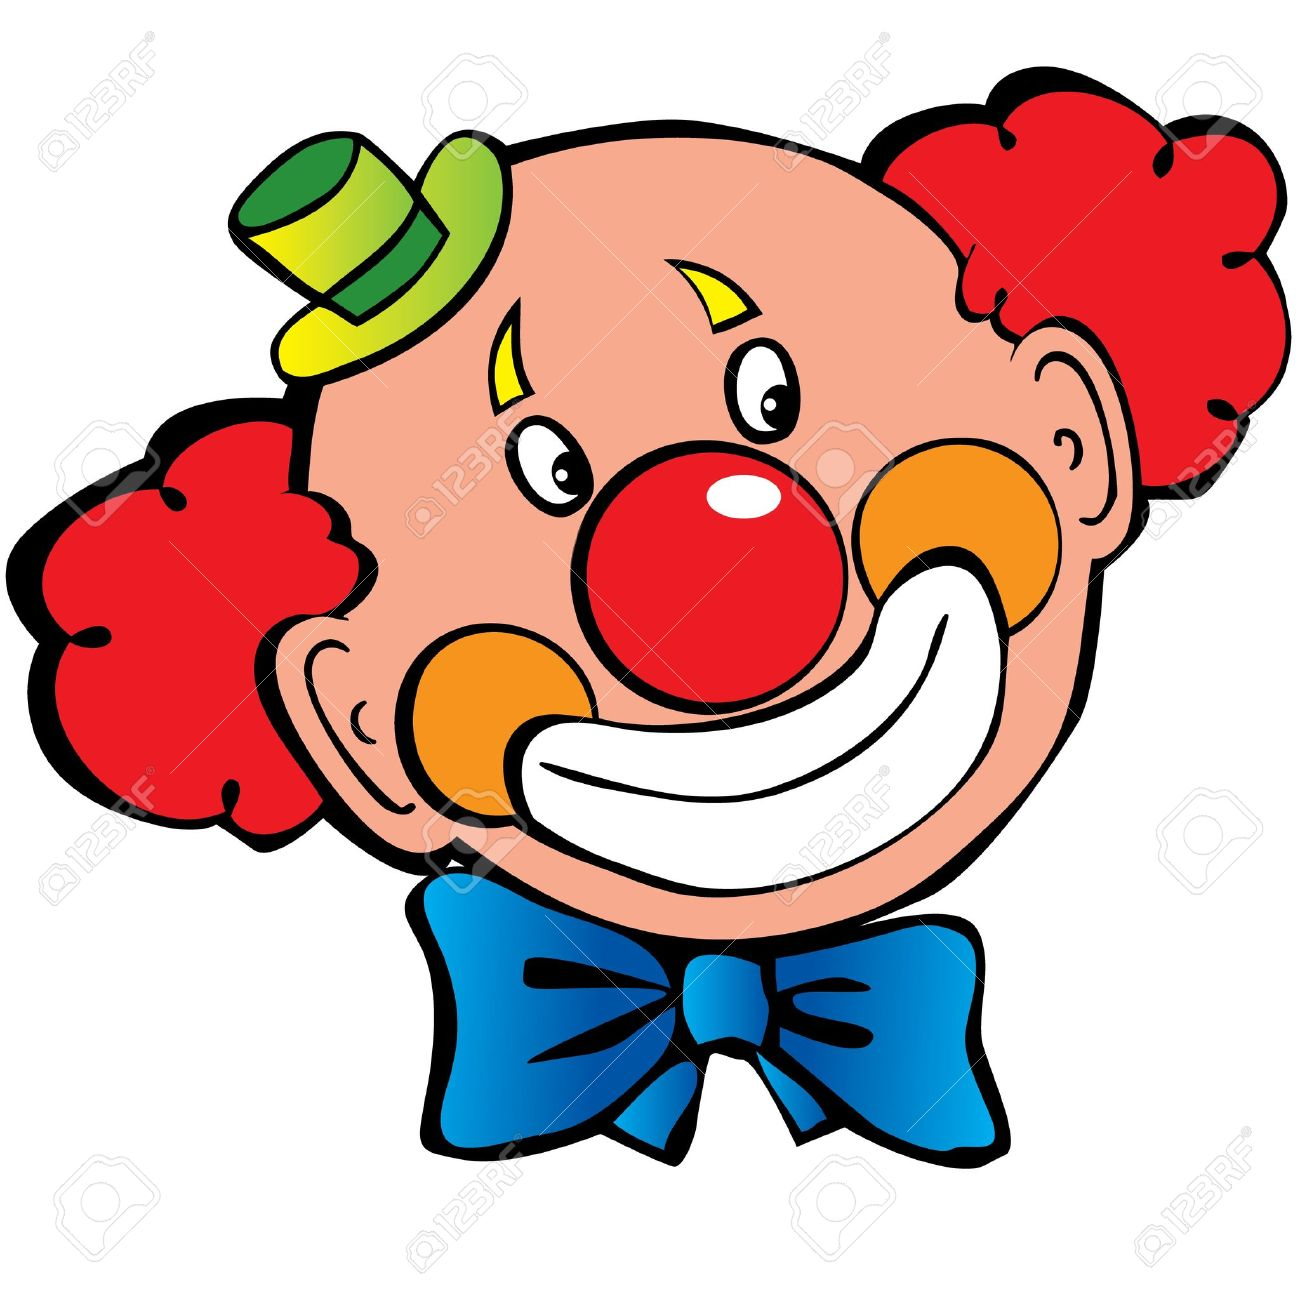 clown face: Happy clown art-illustration on a white background